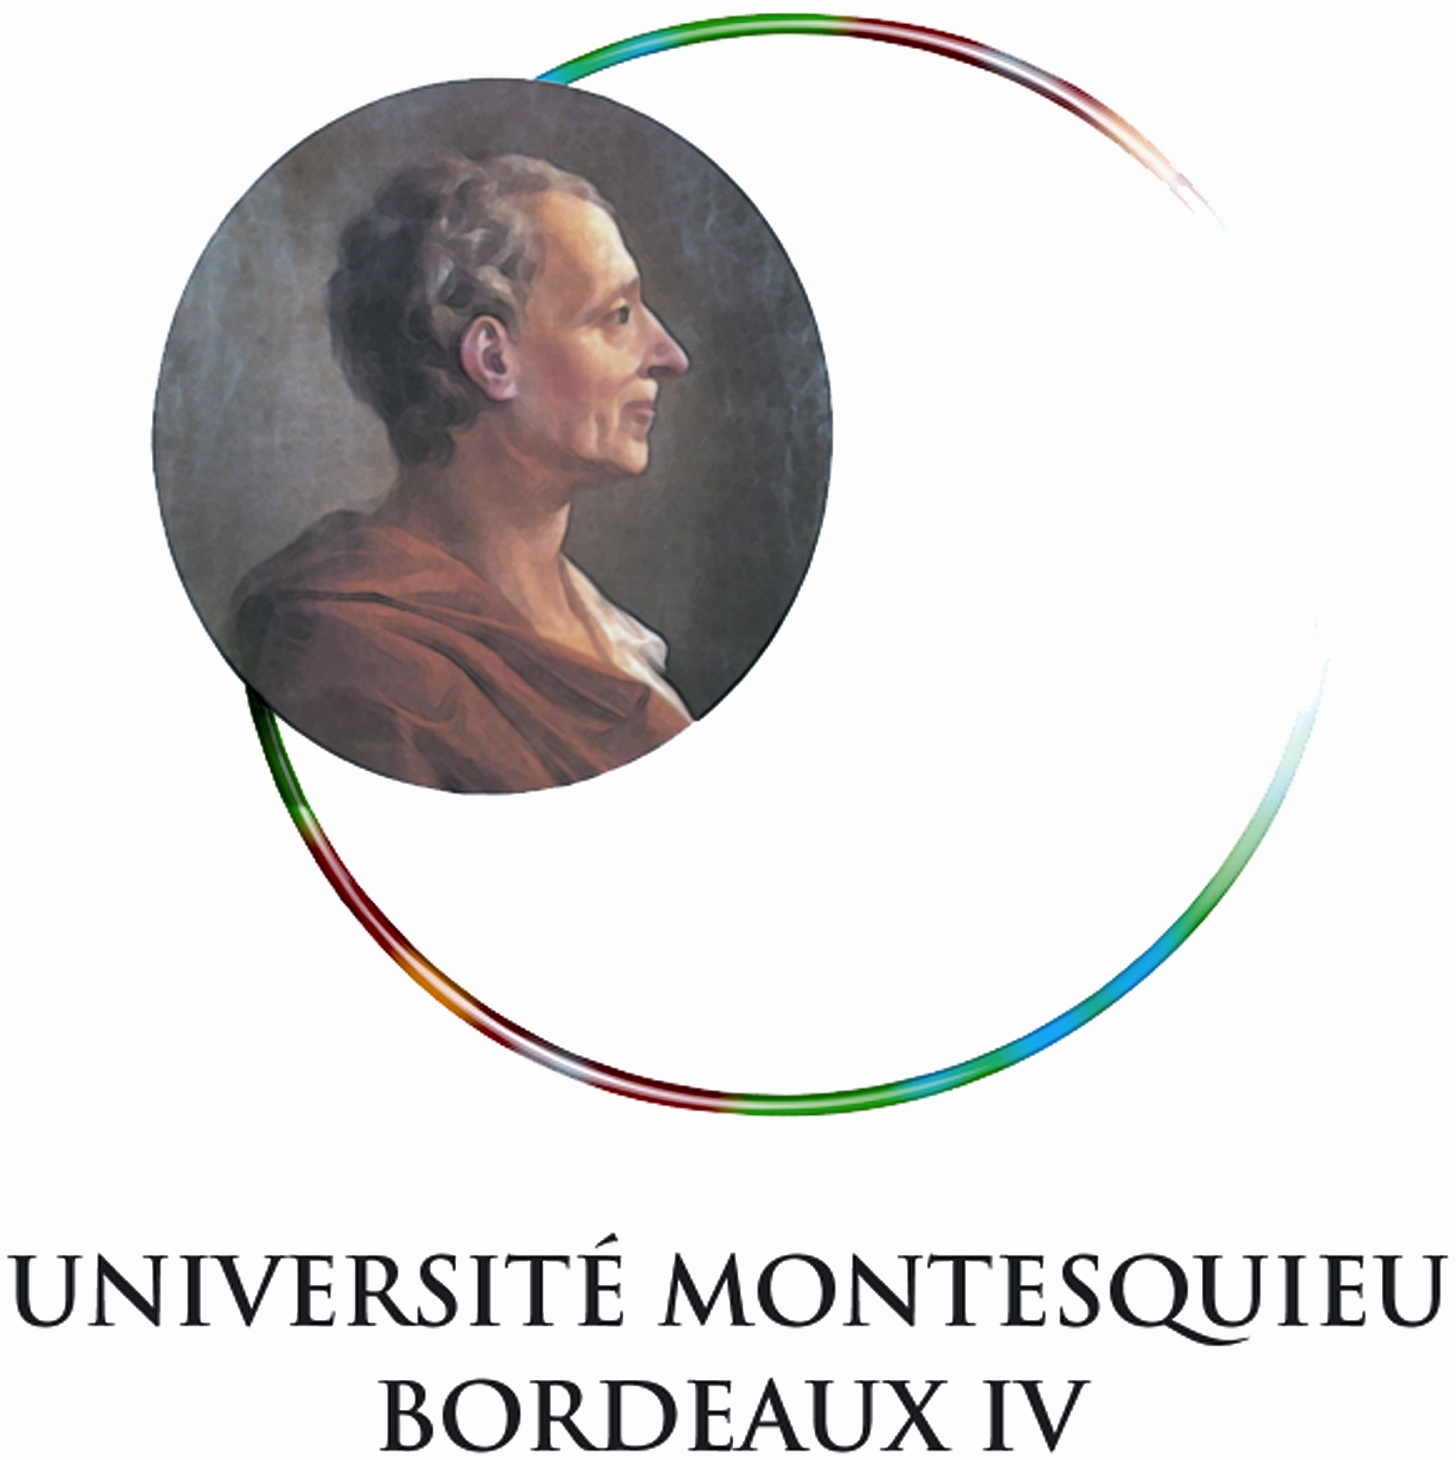 波爾多四大 Université Montesquieu - Bordeaux IV